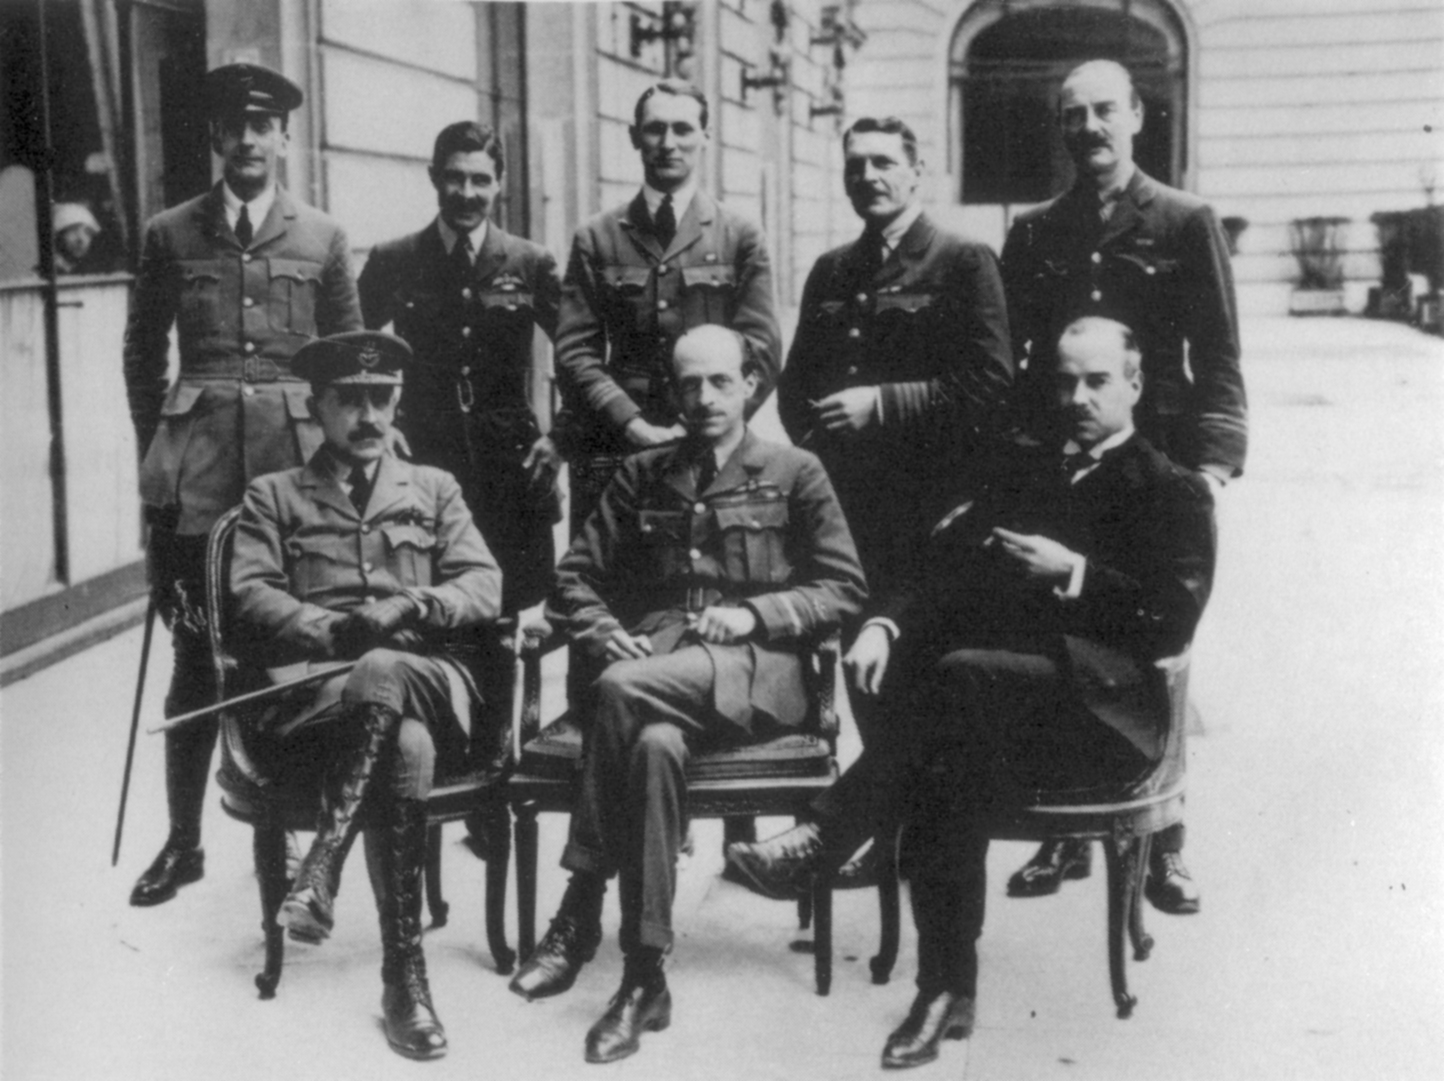 world war i and the treaty of At the end of wwi, the treaty of versailles was signed creating nine new nations:  finland  austria  czechoslovakia  yugoslavia  poland  hungary  latvia  lithuania  estonia the treaty was penned by the allies starting in january of 1919.